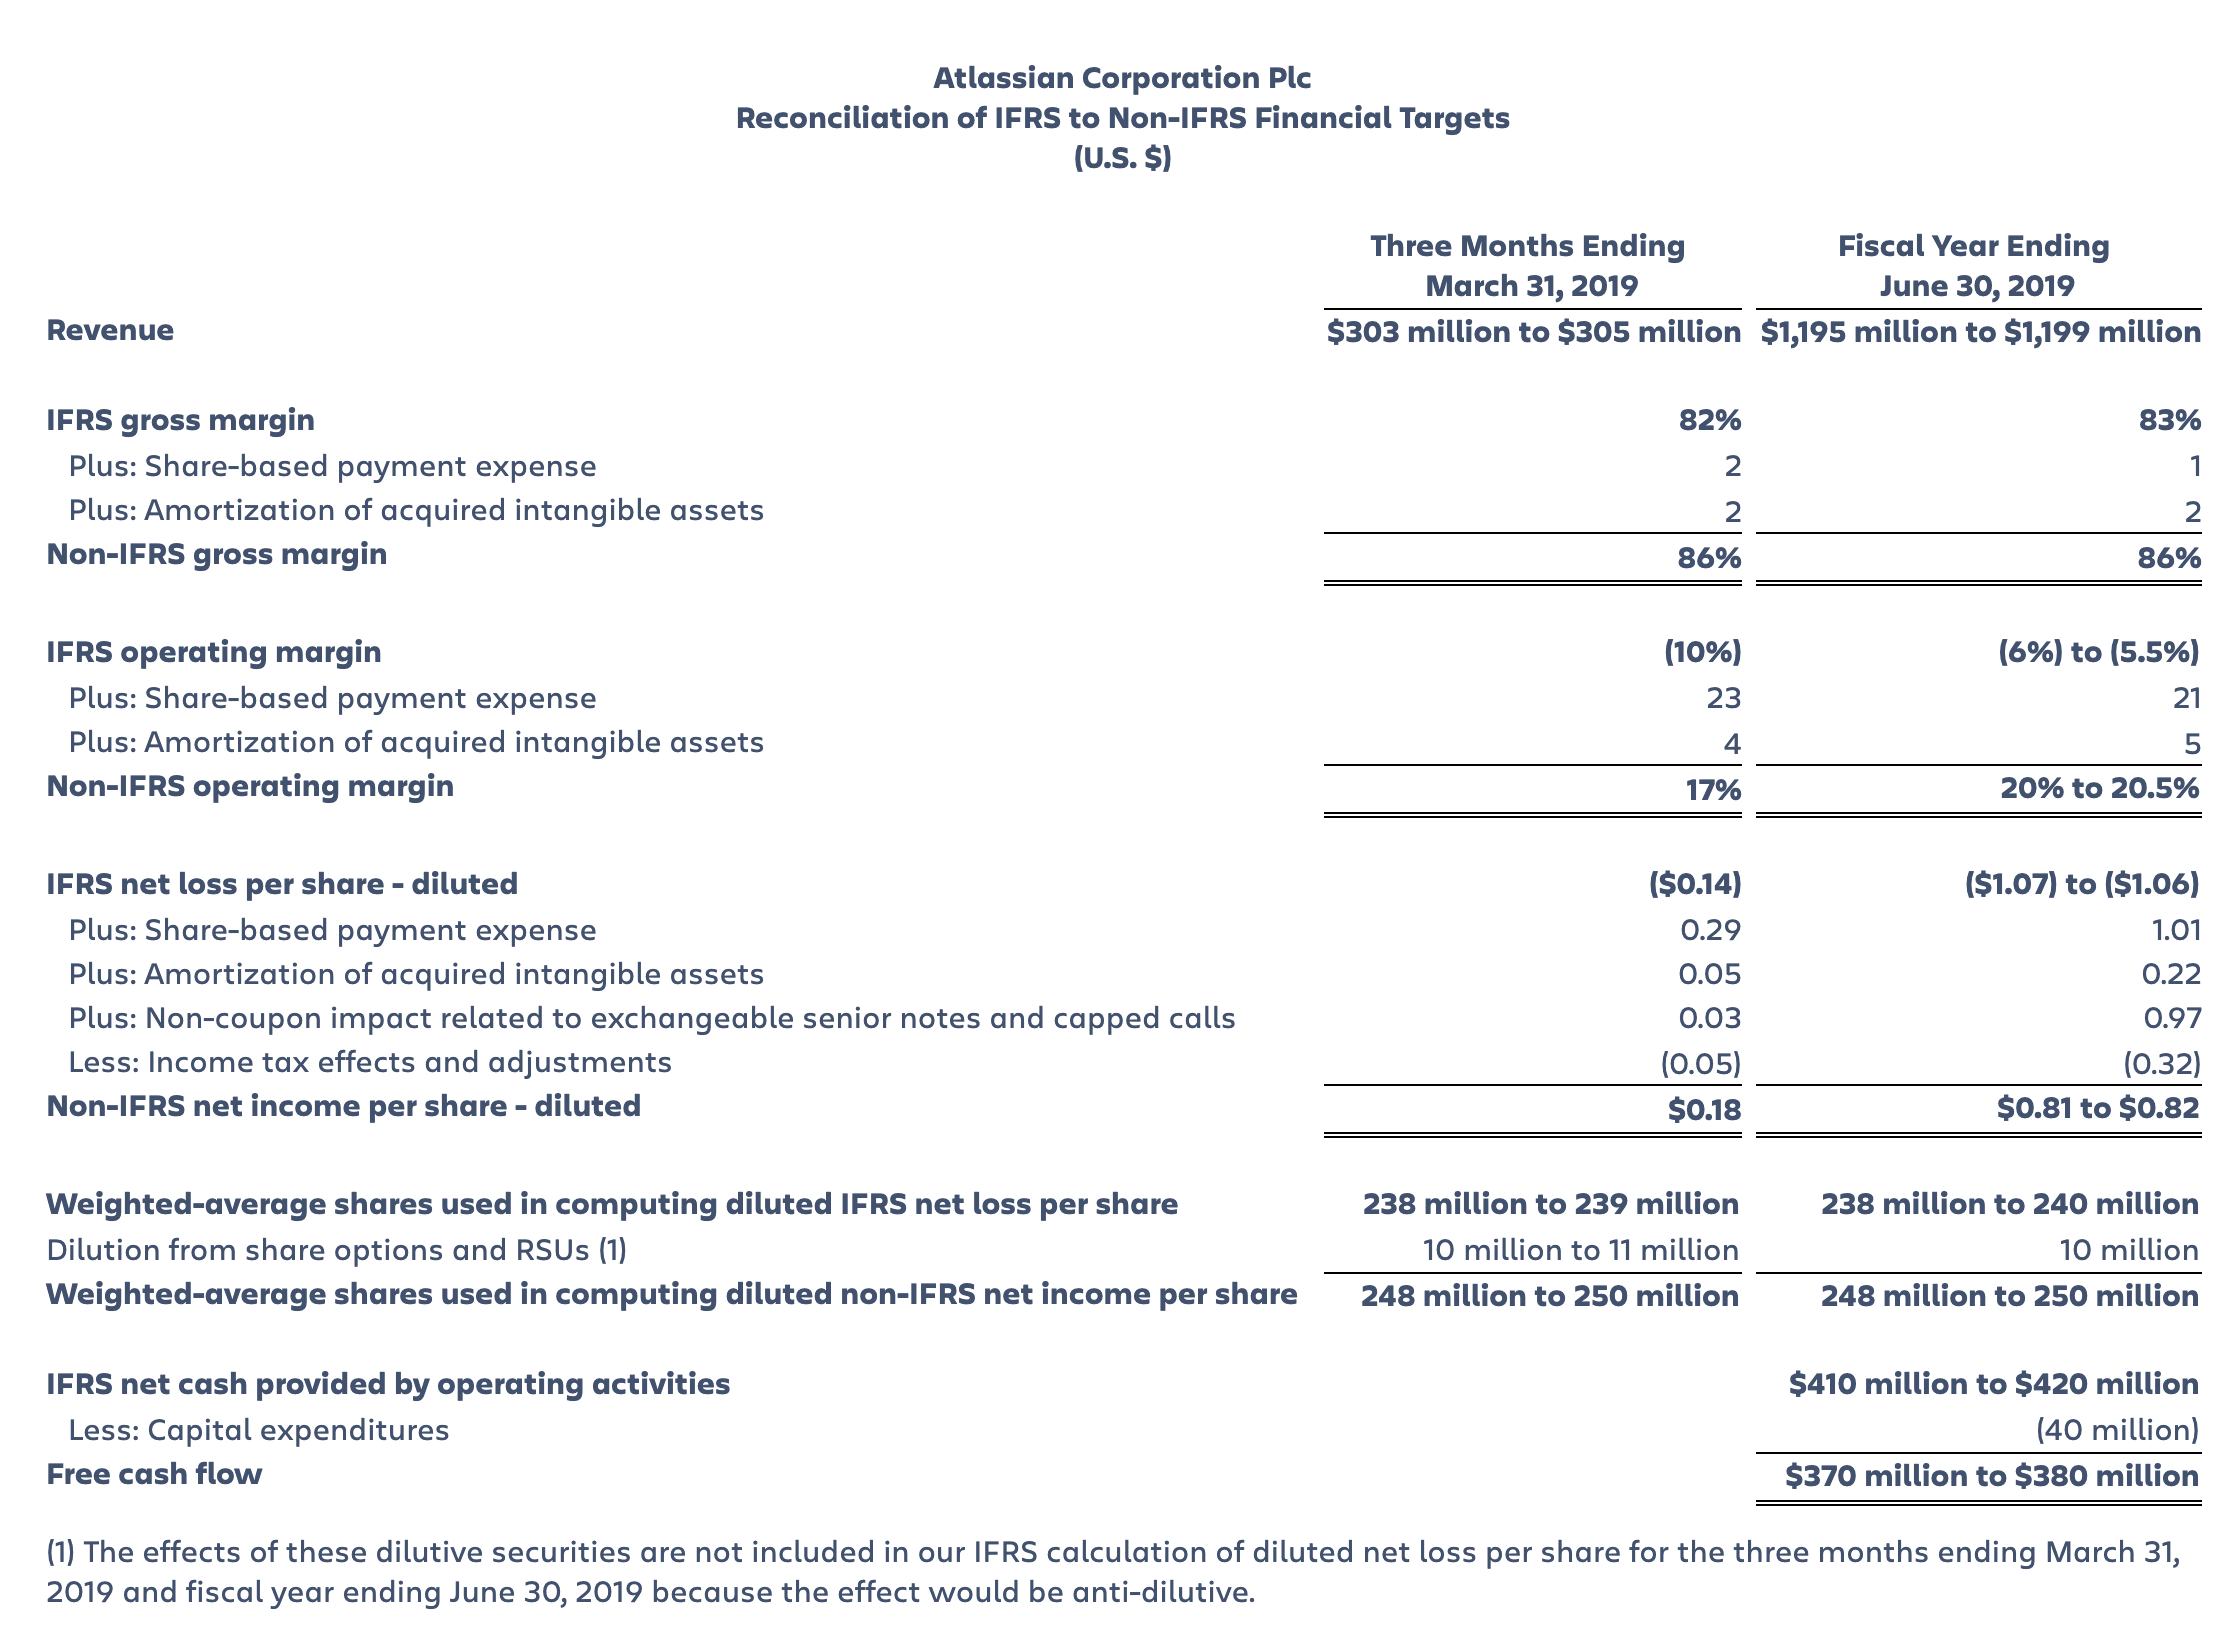 Atlassian Reconciliation of IFRS to Non-IFRS Targets, Second Quarter Fiscal Year 2019